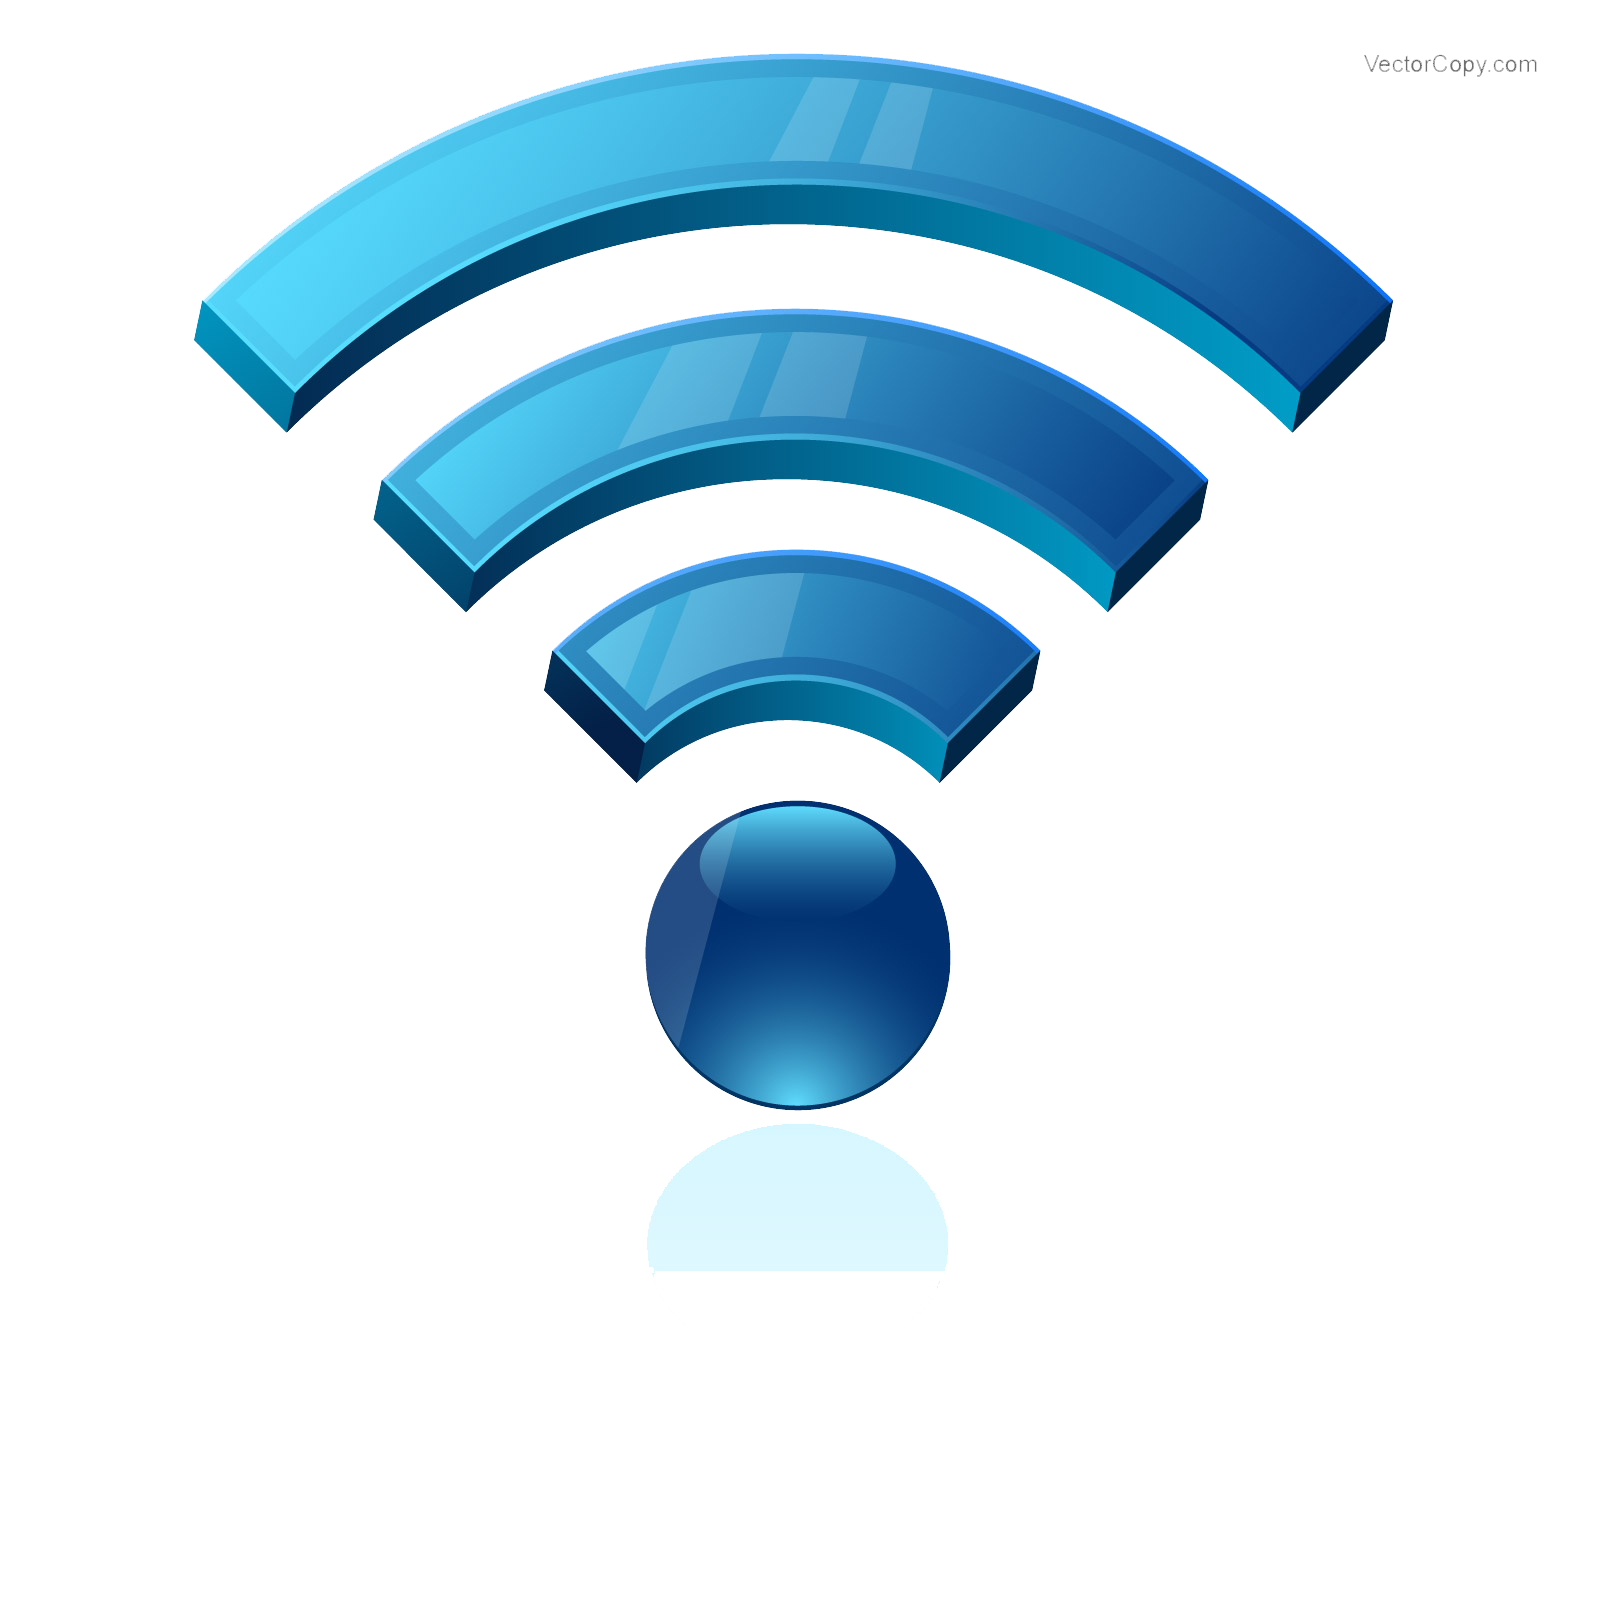 Wireless Connectivity Clipart Icon | Web Icons PNG